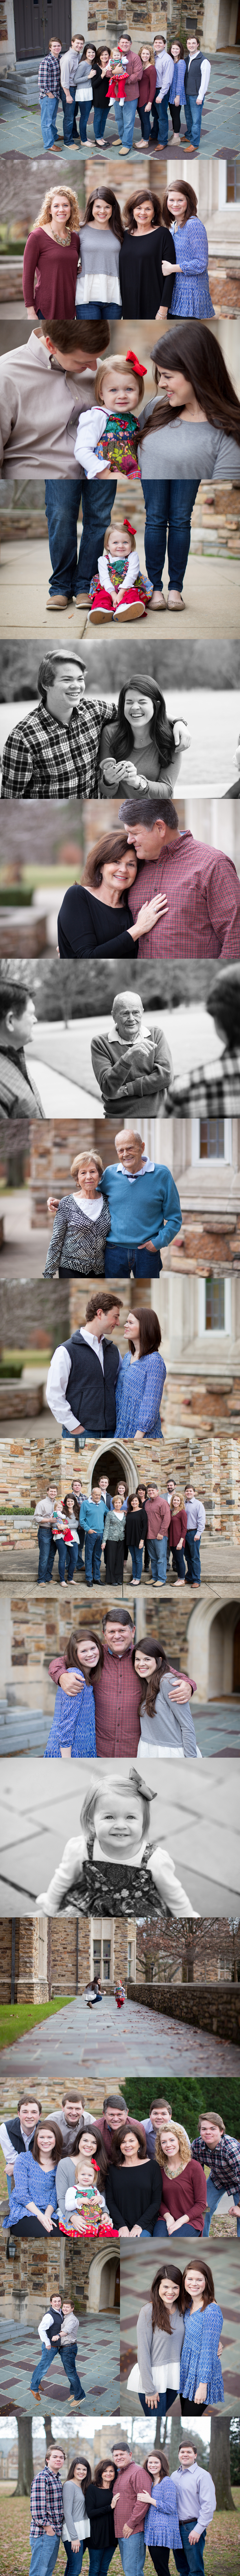 Rhodes College Family Photos: Smith Family